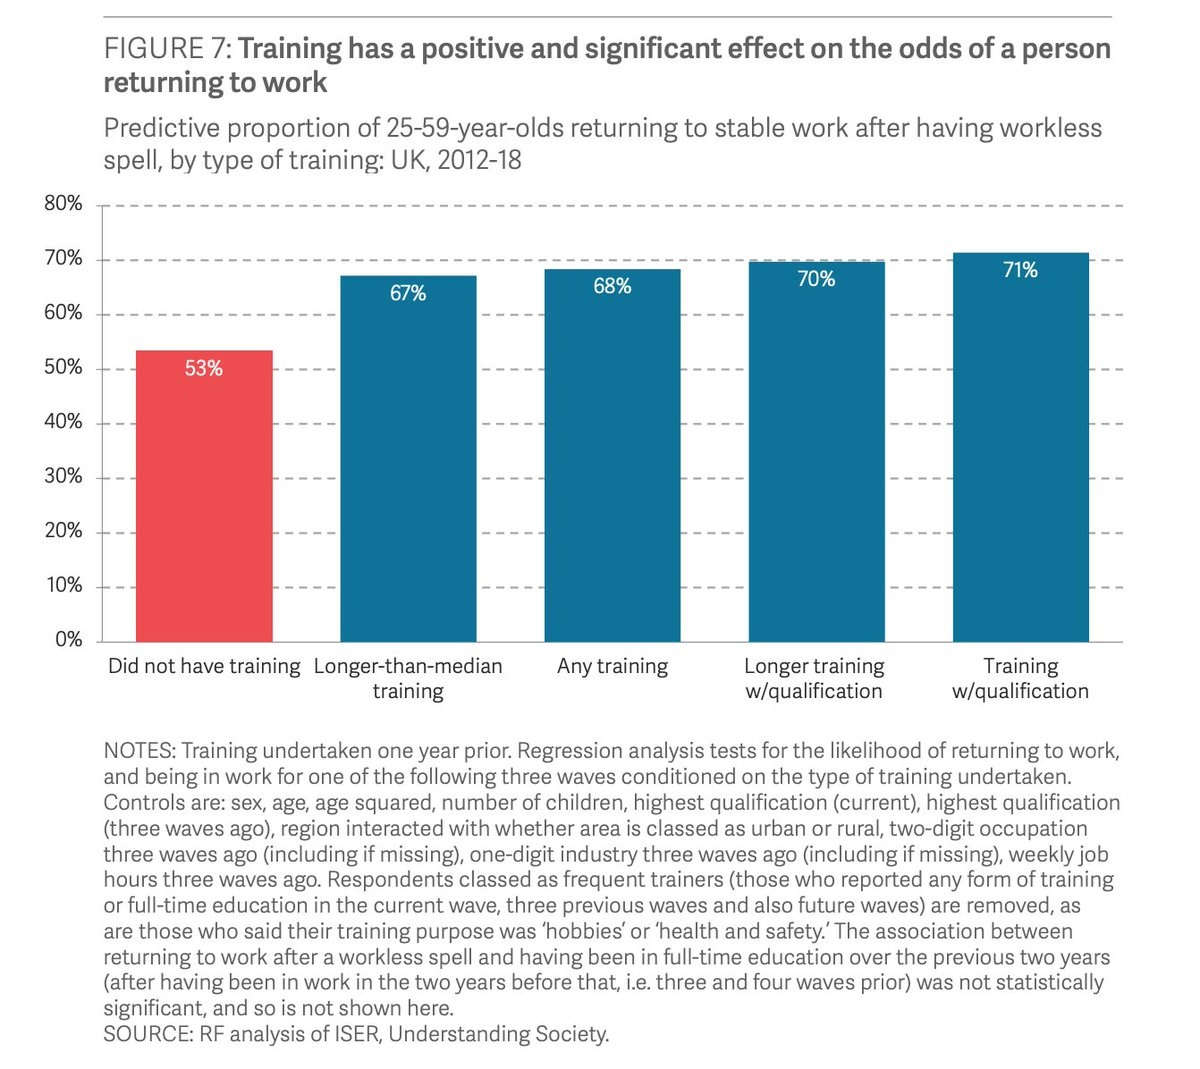 And in fact, recent research from @resfoundation shows that education & training can have a significant effect on the odds of a person returning to work...even if our analysis looked at data from a more buoyant labour market.  https://t.co/VkraXF6Or4 5/9 https://t.co/ol8Hs1gouI